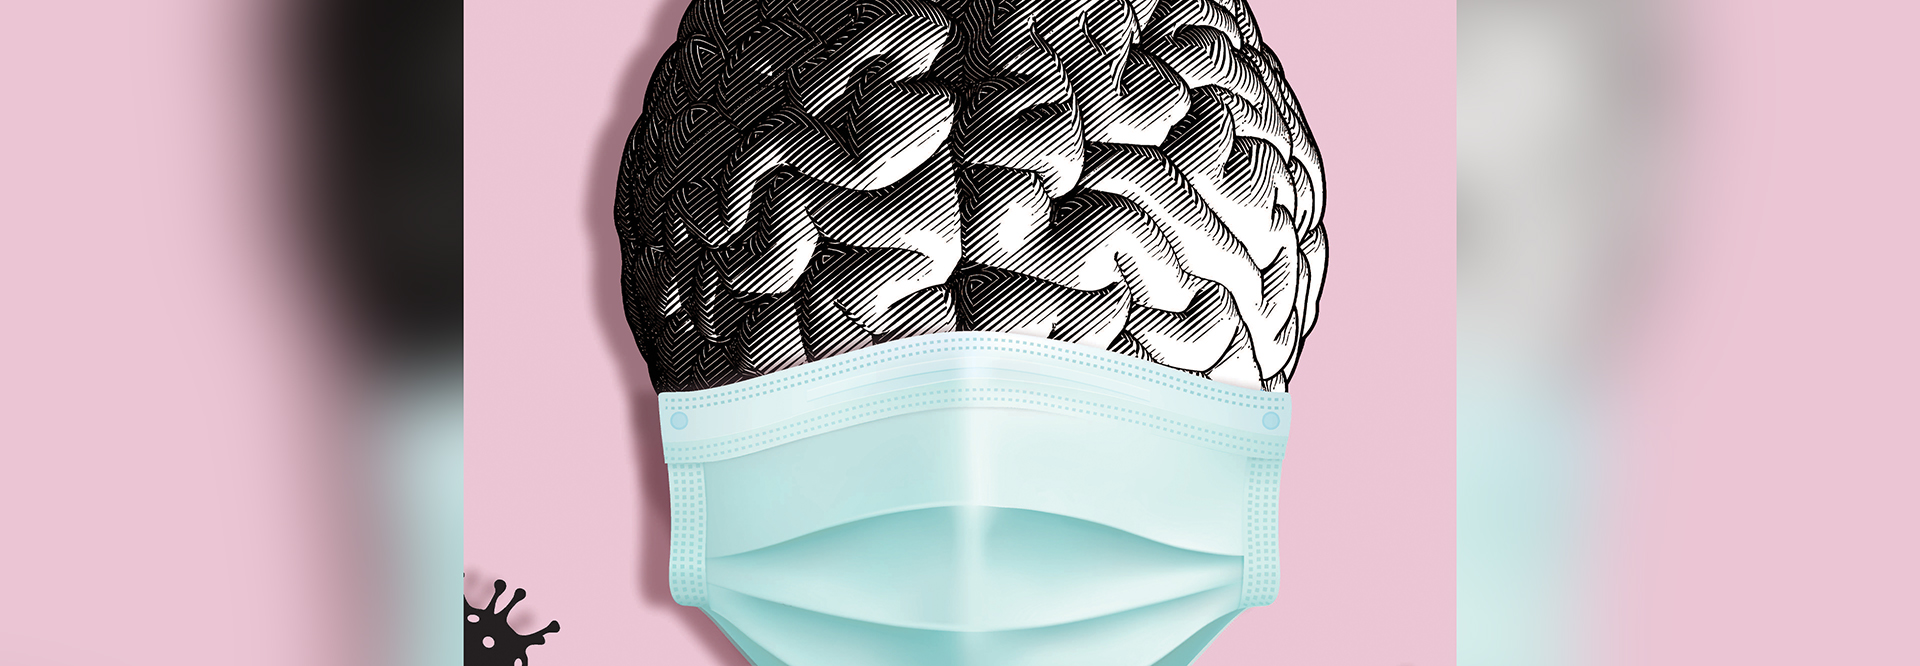 Illustration of a brain partially covered by a face mask to protect from the COVID particles in the air around it. Illustration is black and white on a pink backbround.